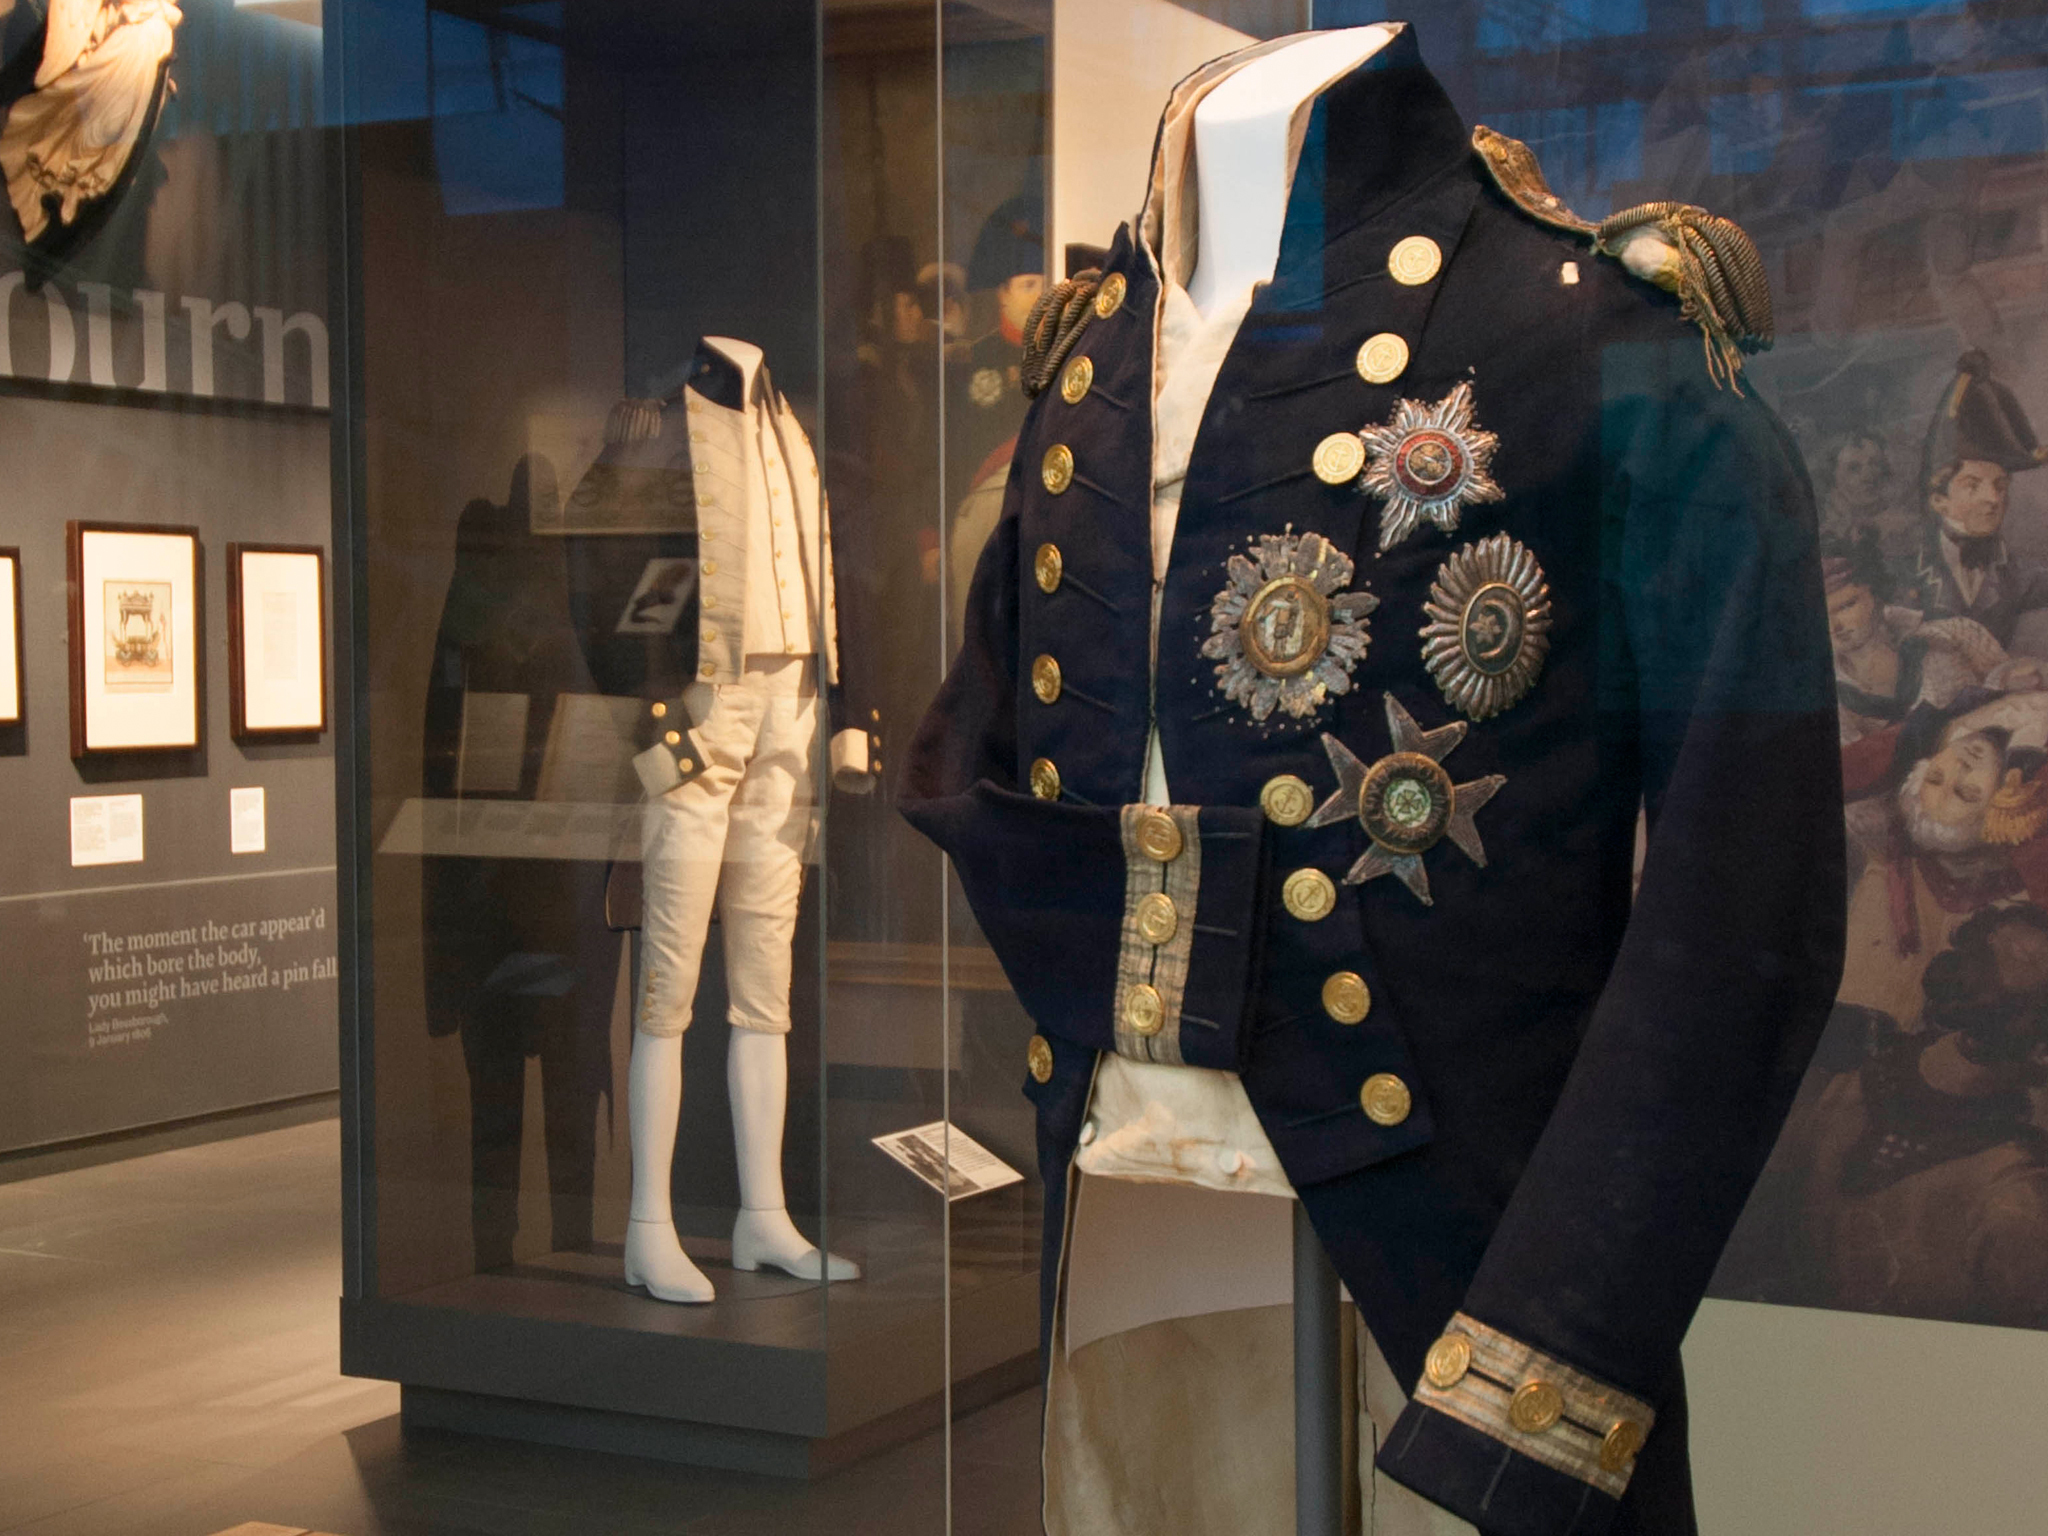 See Nelson's blood-stained uniform from the Battle of Trafalgar